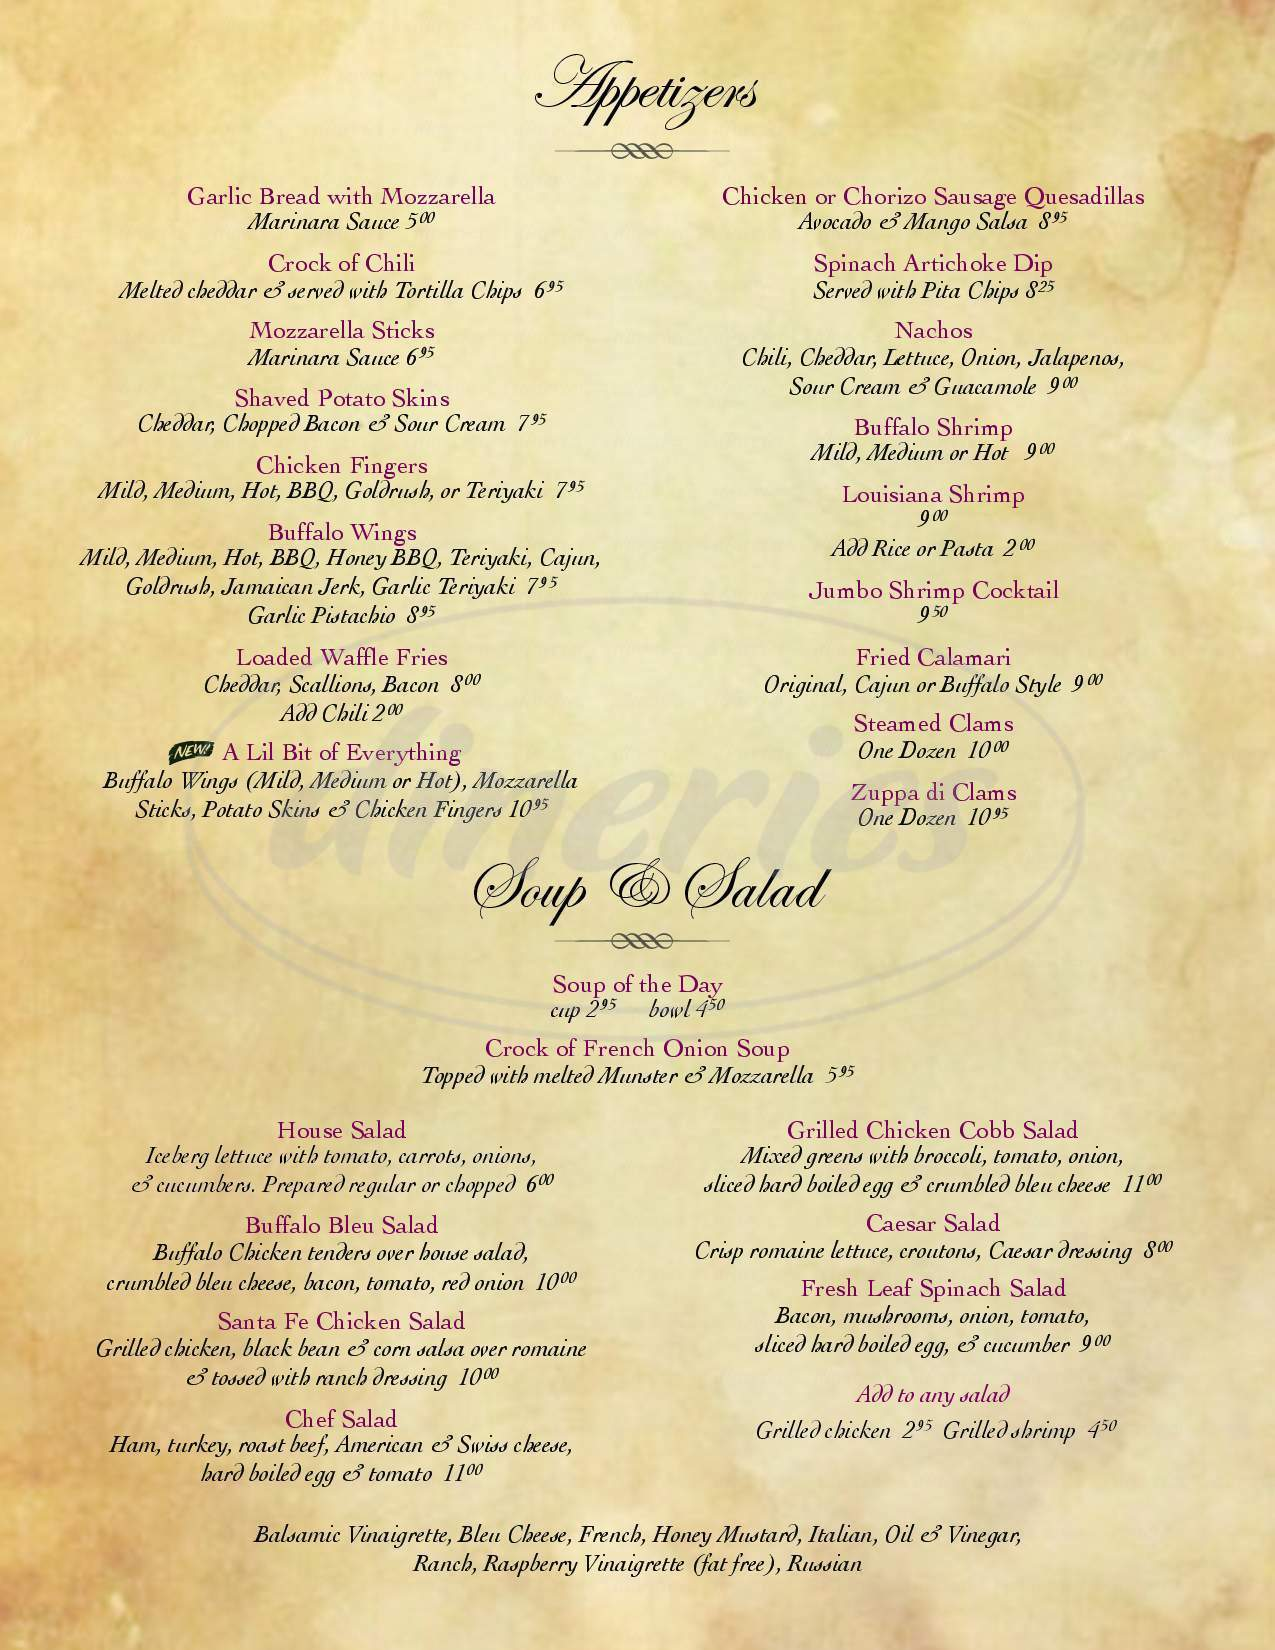 menu for Clarksville Inn